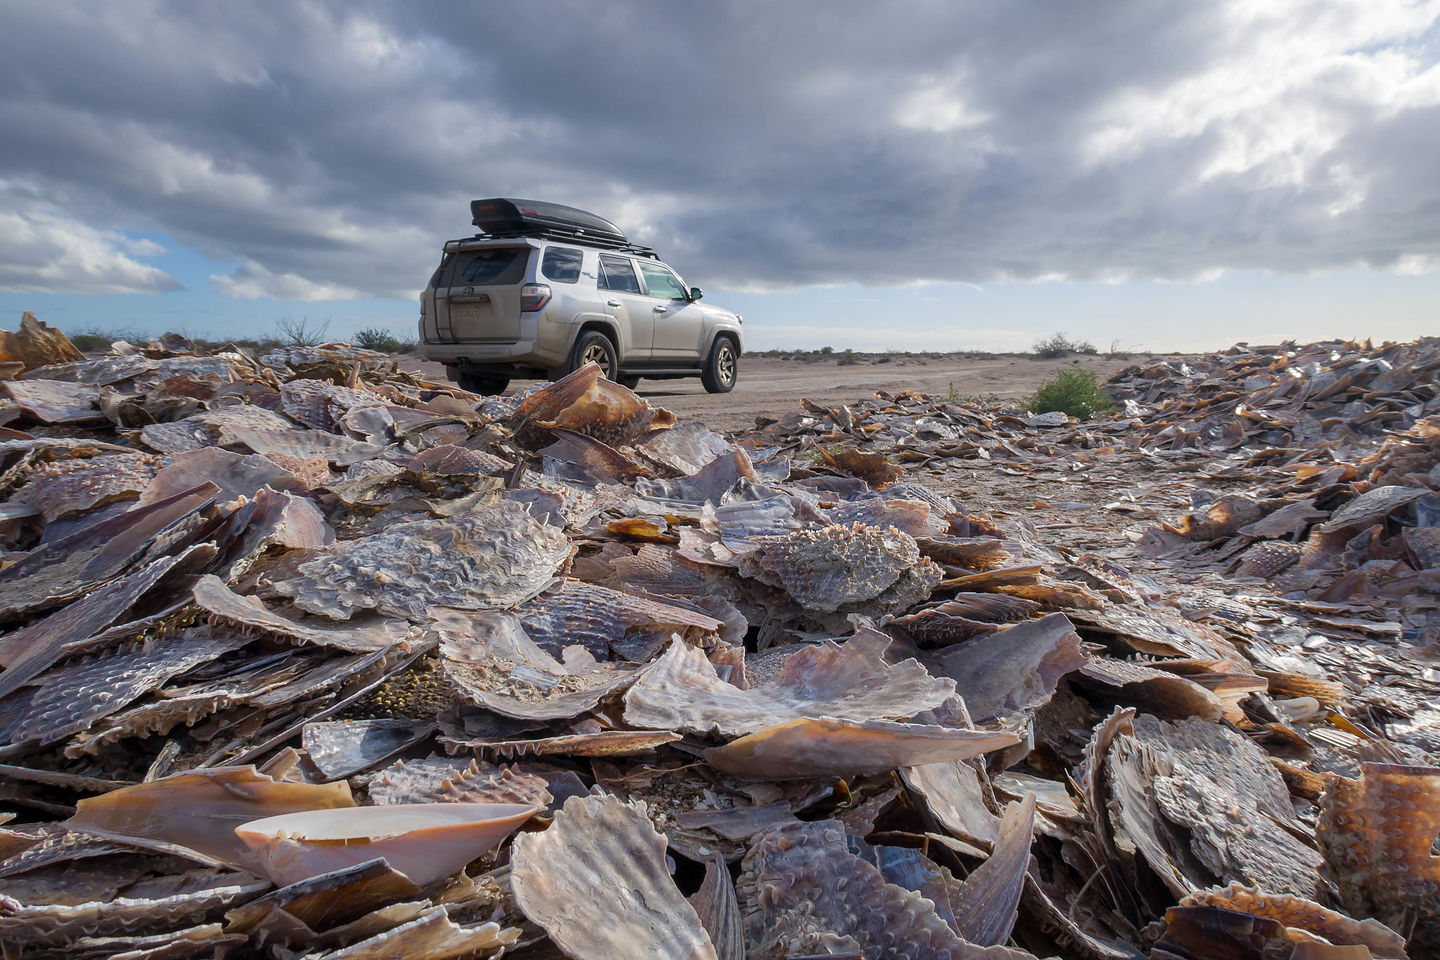 Pile of shells on road to Kuyima Eco Tour camp